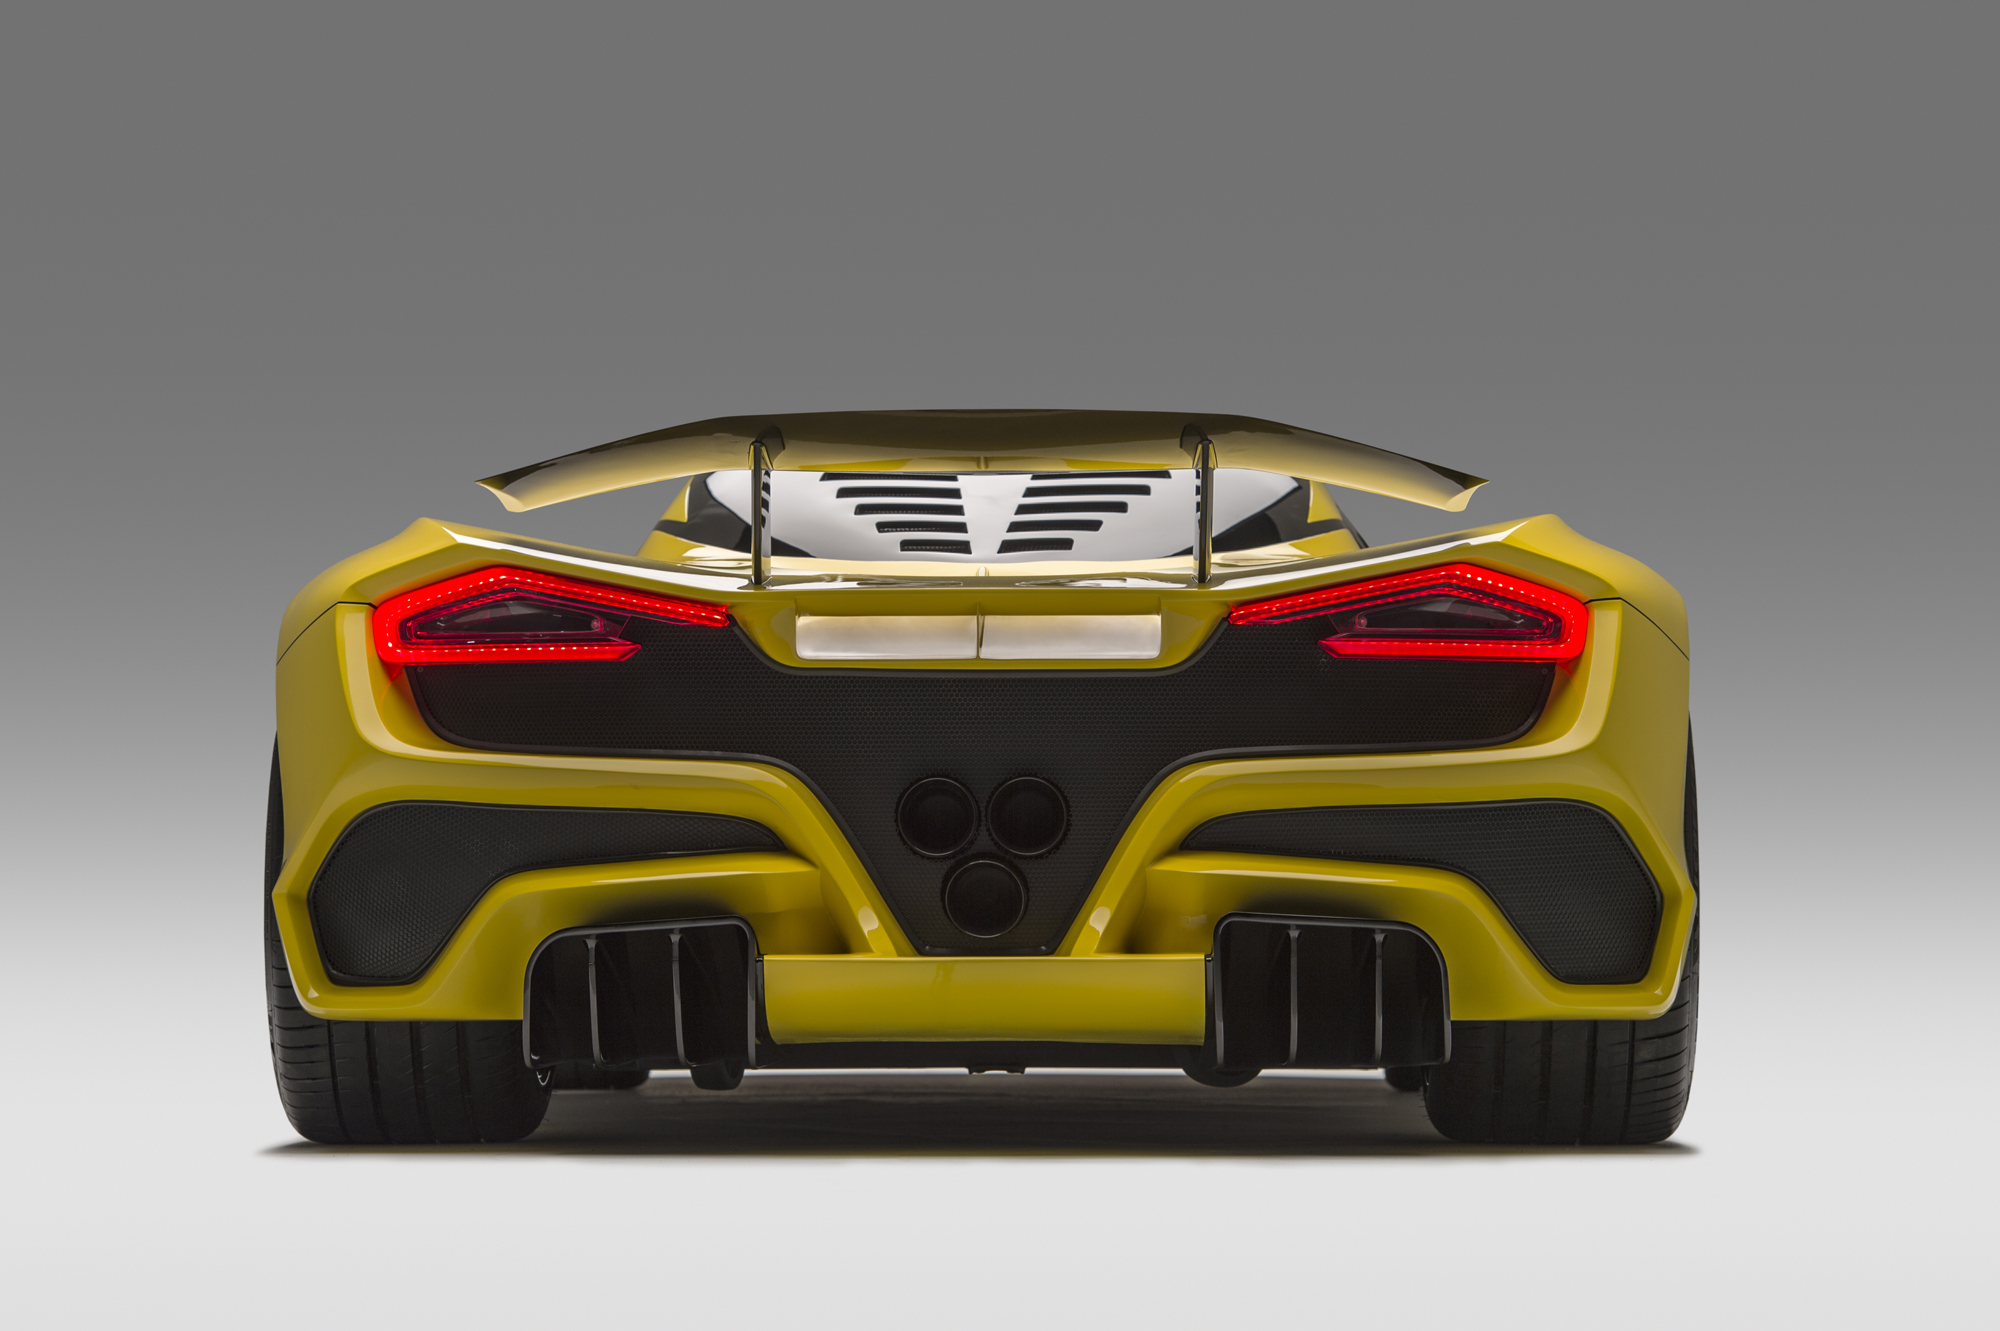 Hennessey Venom F5 Rear End Photo